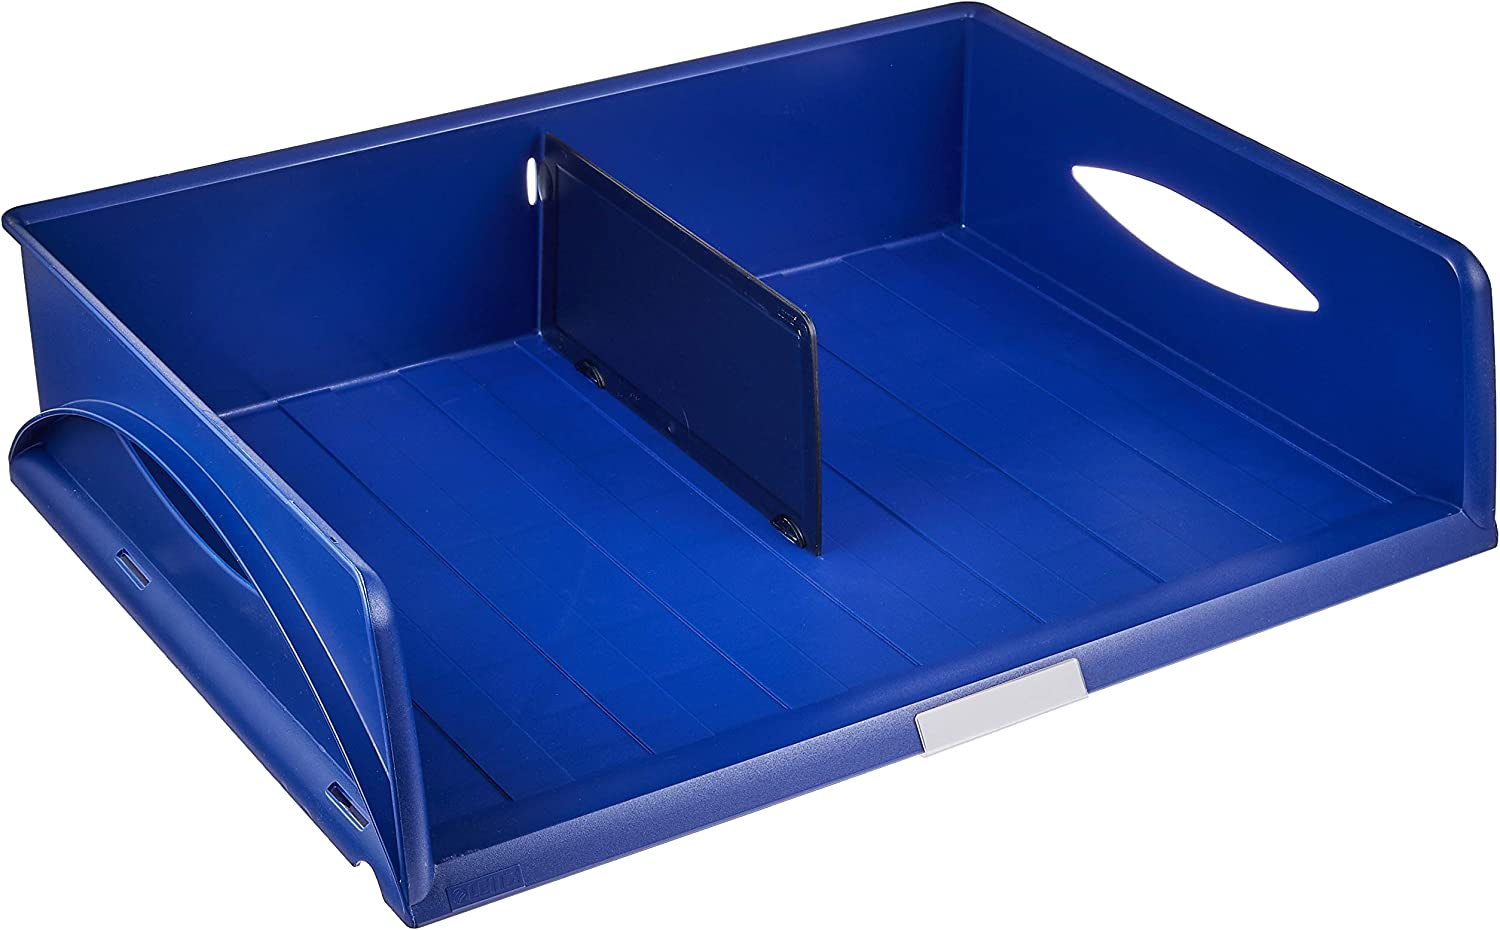 Leitz Sorty Jumbo Free shipping on posting reviews Letter Tray Tucson Mall 5232-00-3 Ref Blue W470xD355xH90mm